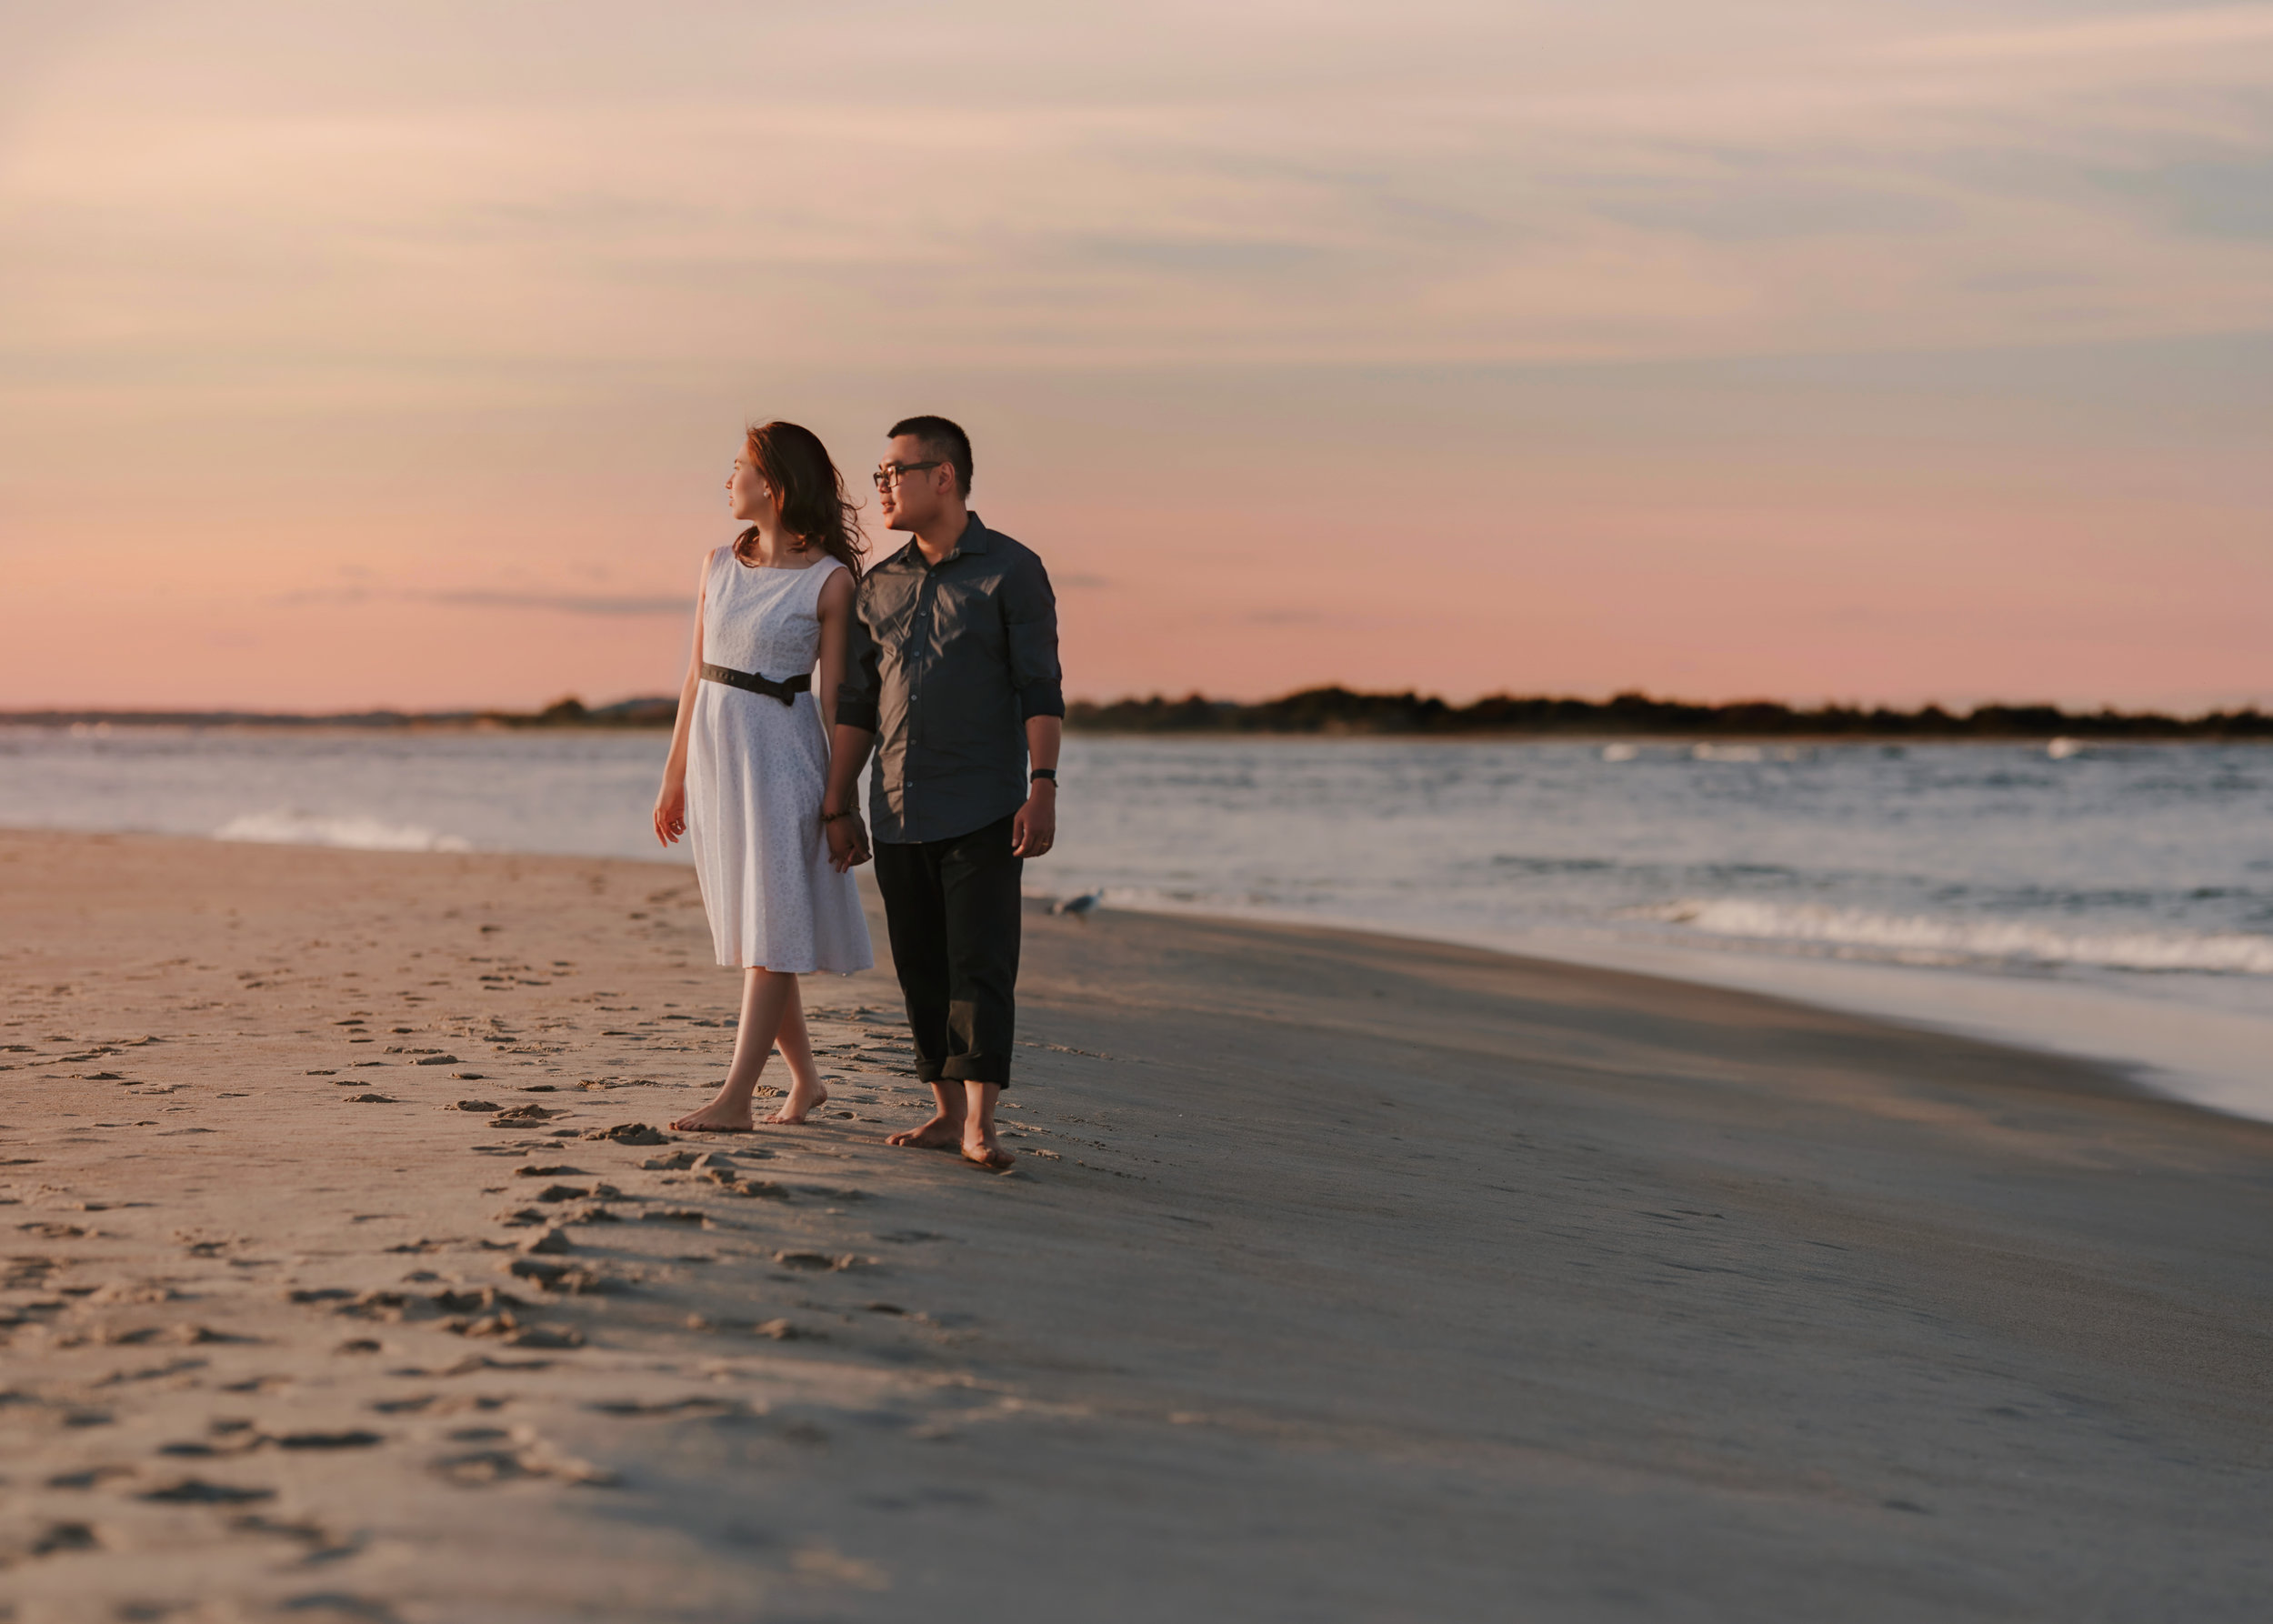 Beautiful and Natural Unposed Engagement Portrait Photos at Crane Beach